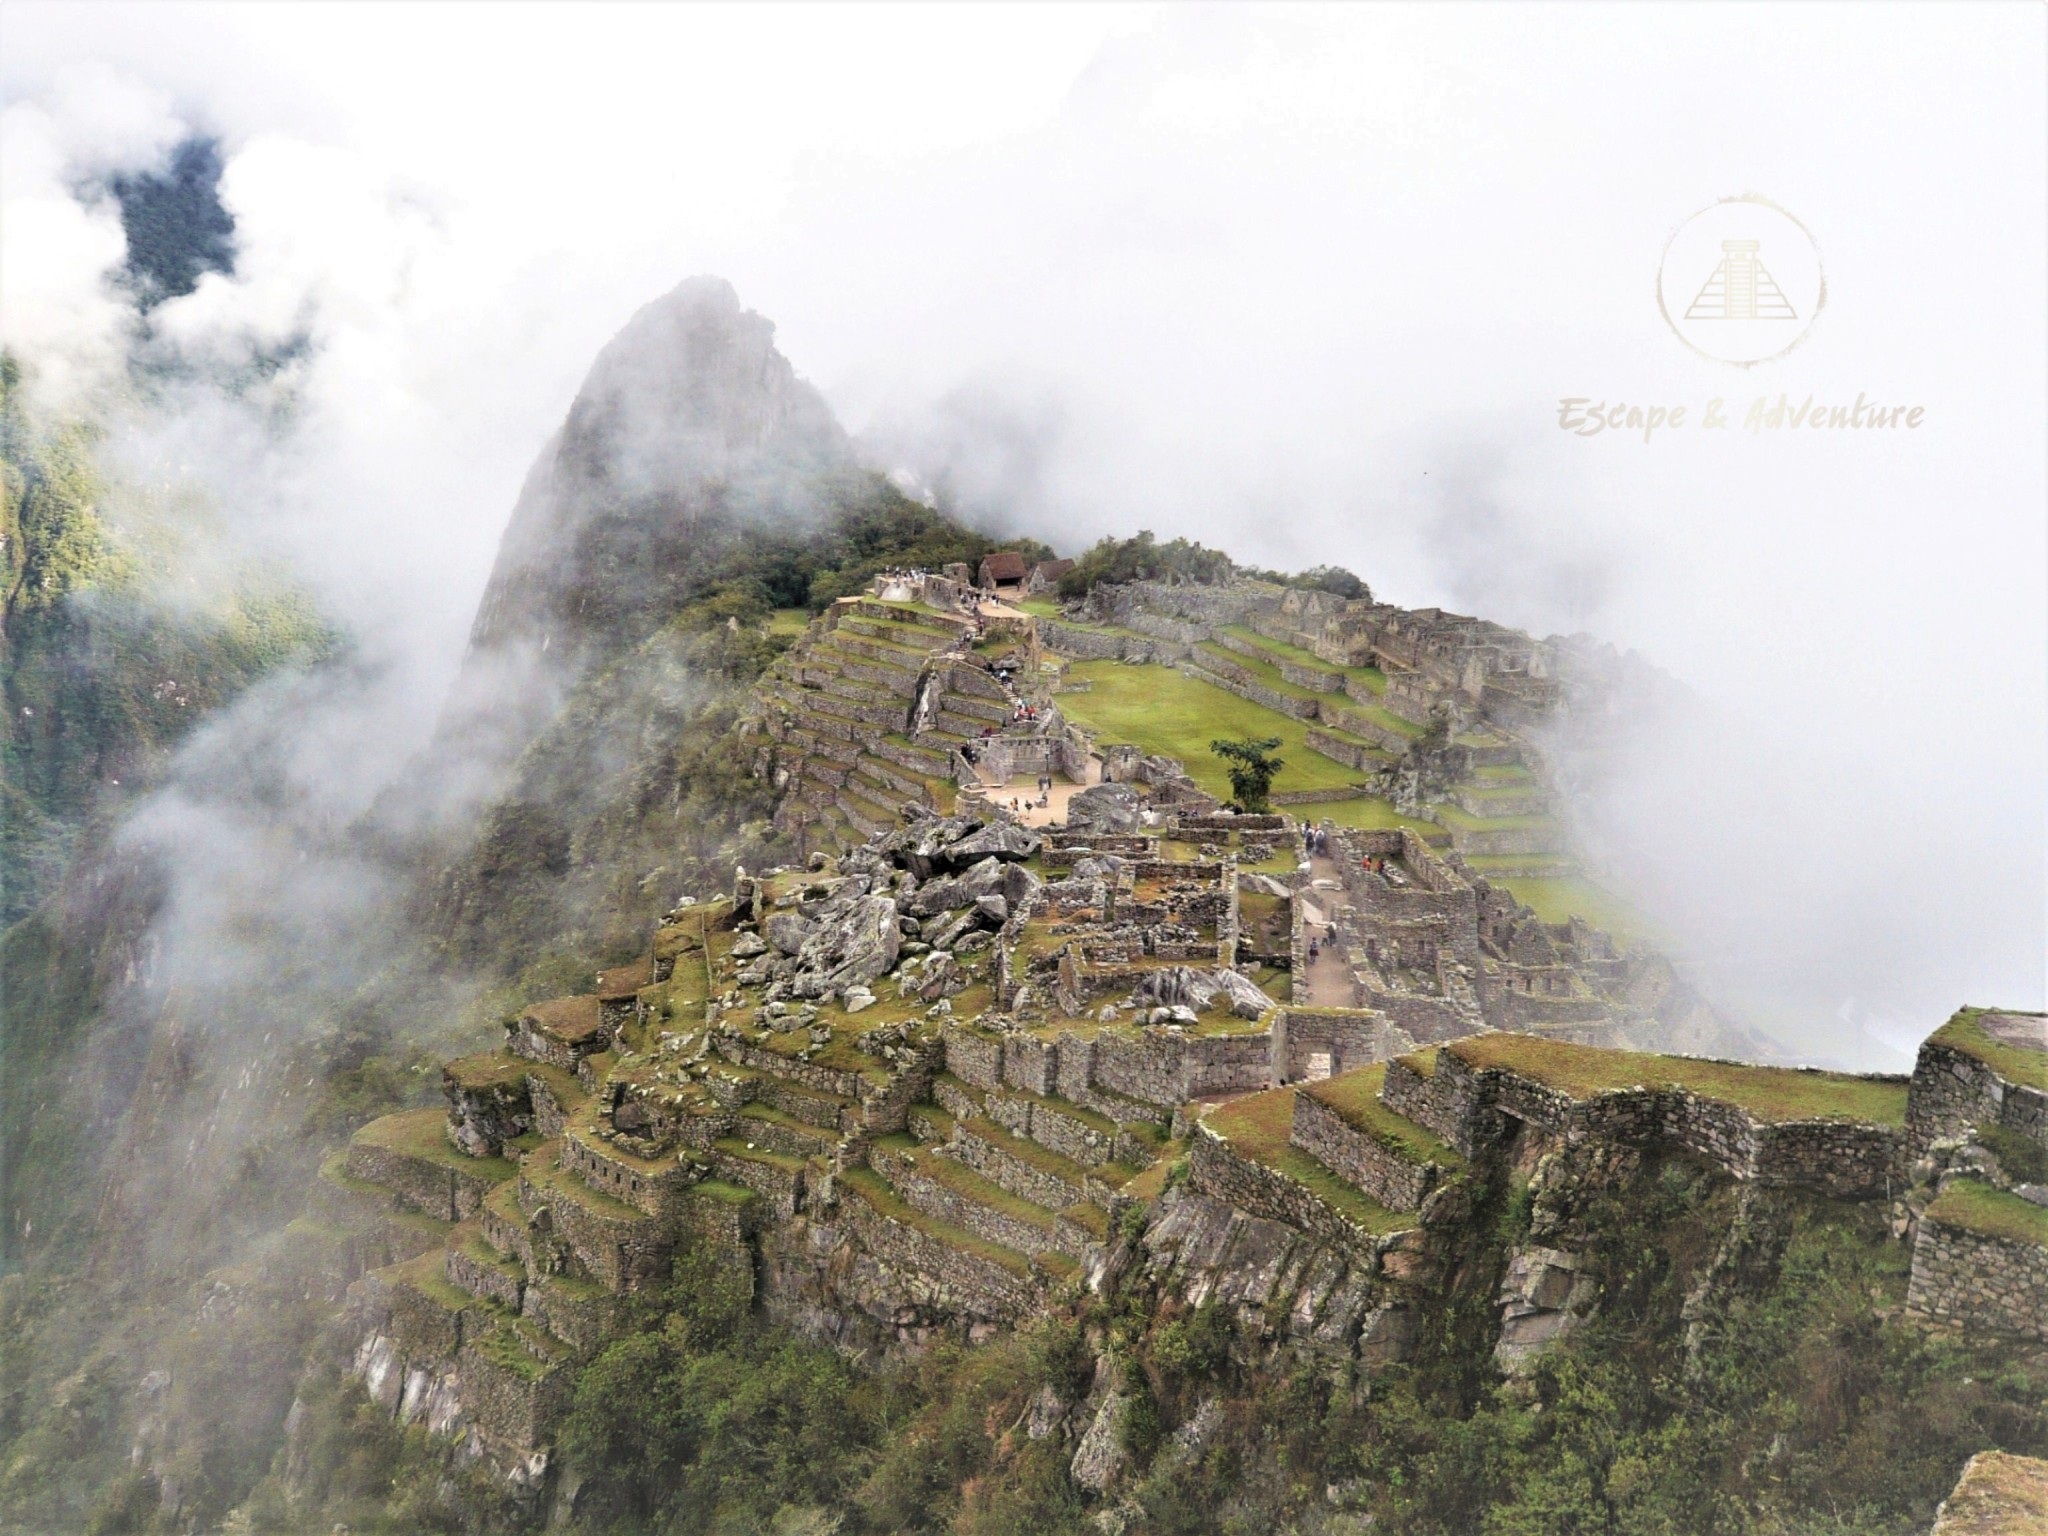 View of Machu Picchu ruins partly obscured by atmospheric clouds.